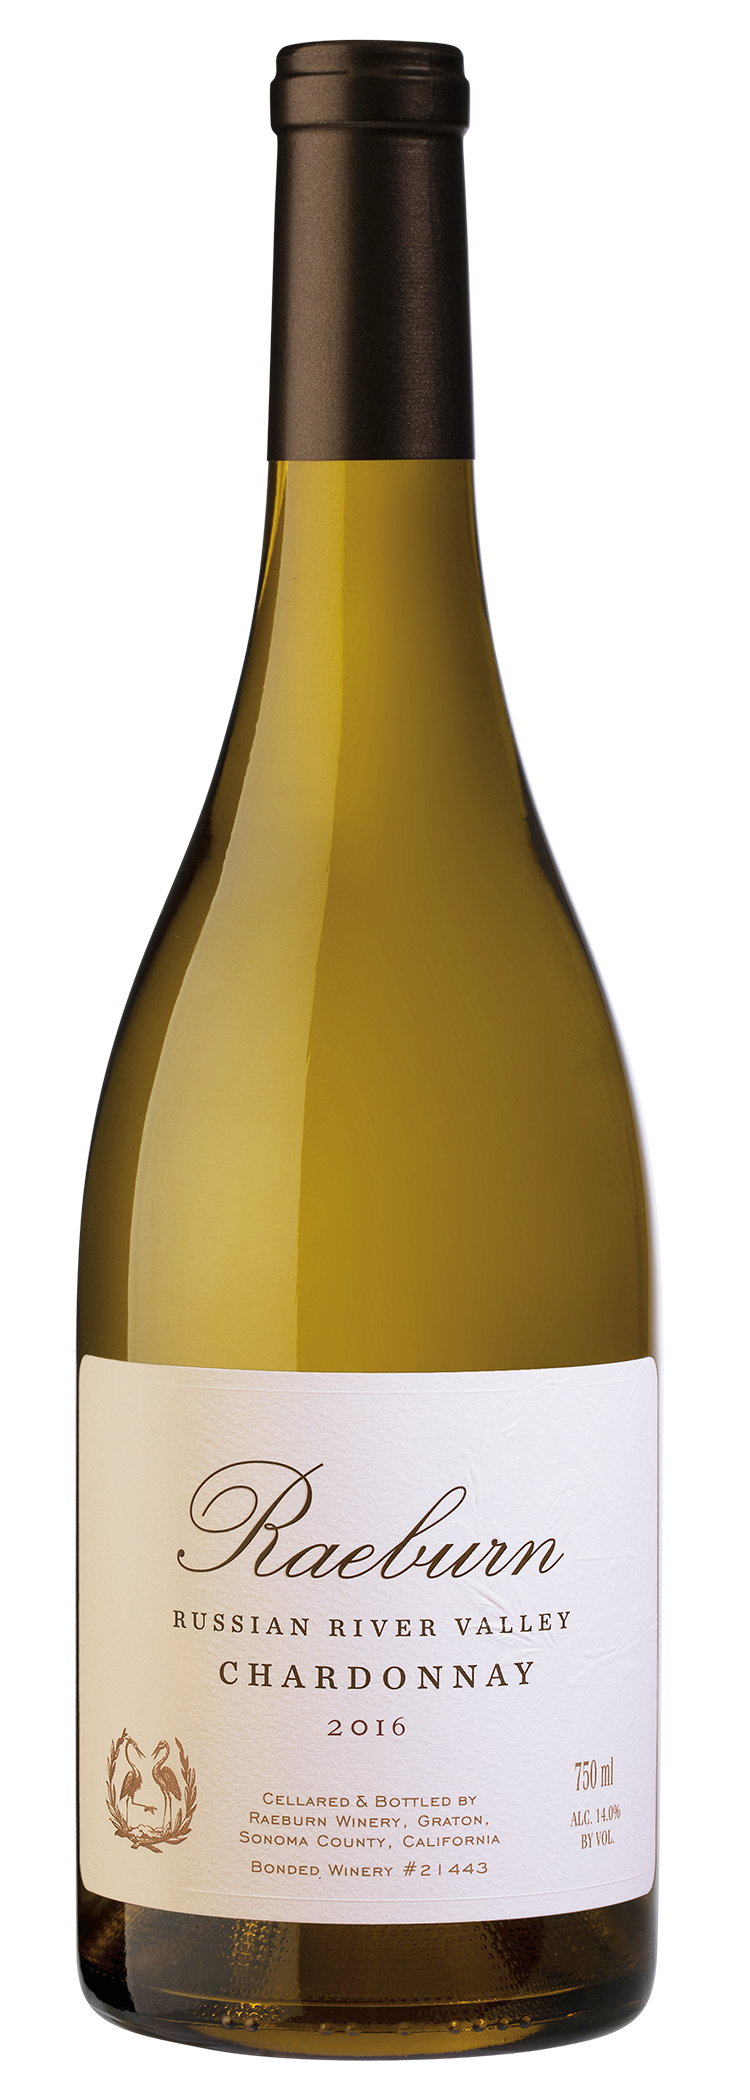 Raeburn Chardonnay 2016 (Bottle)